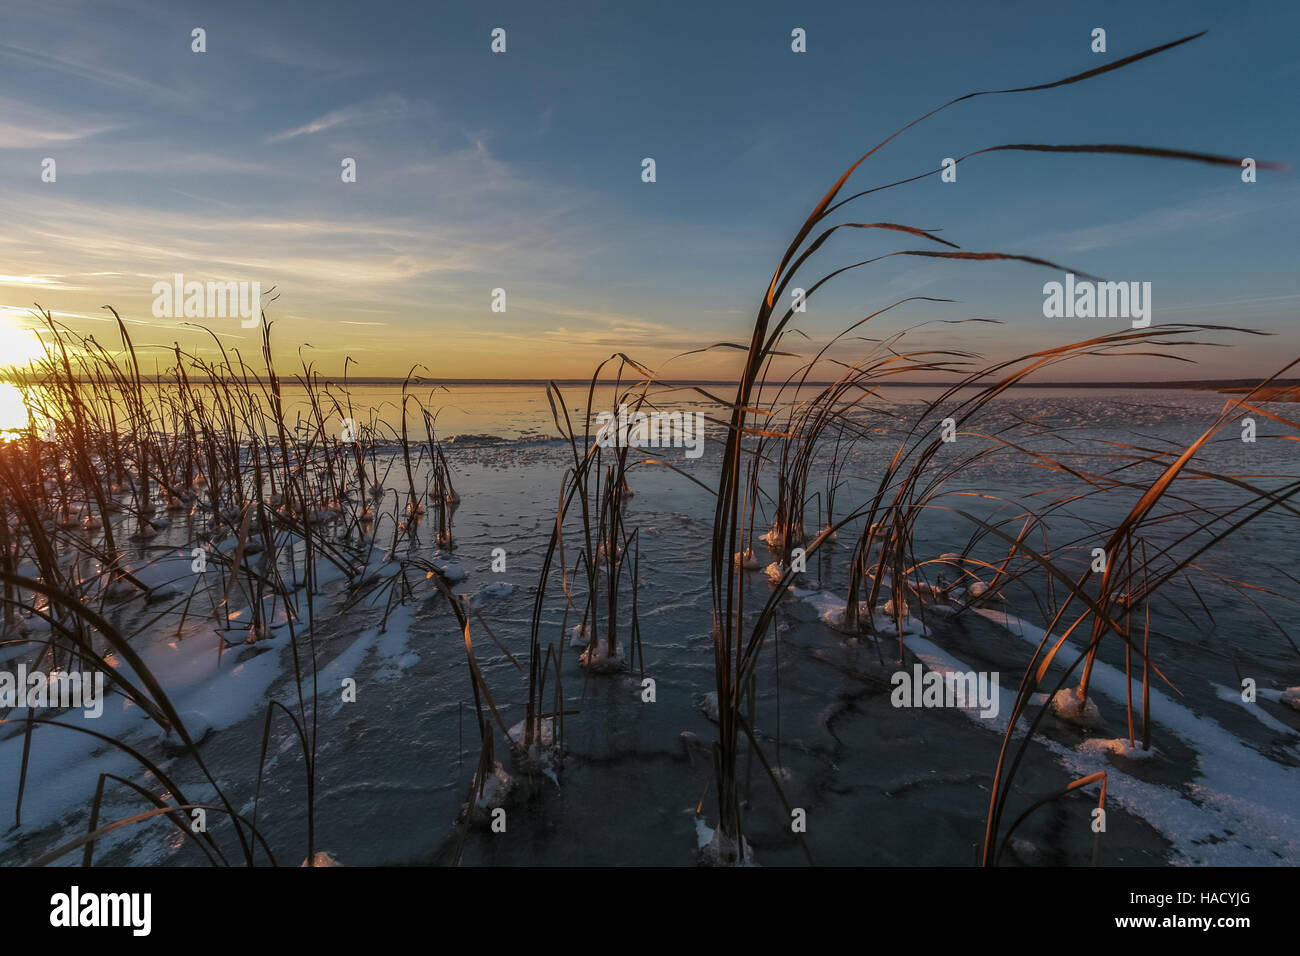 dry cane in ice - Stock Image